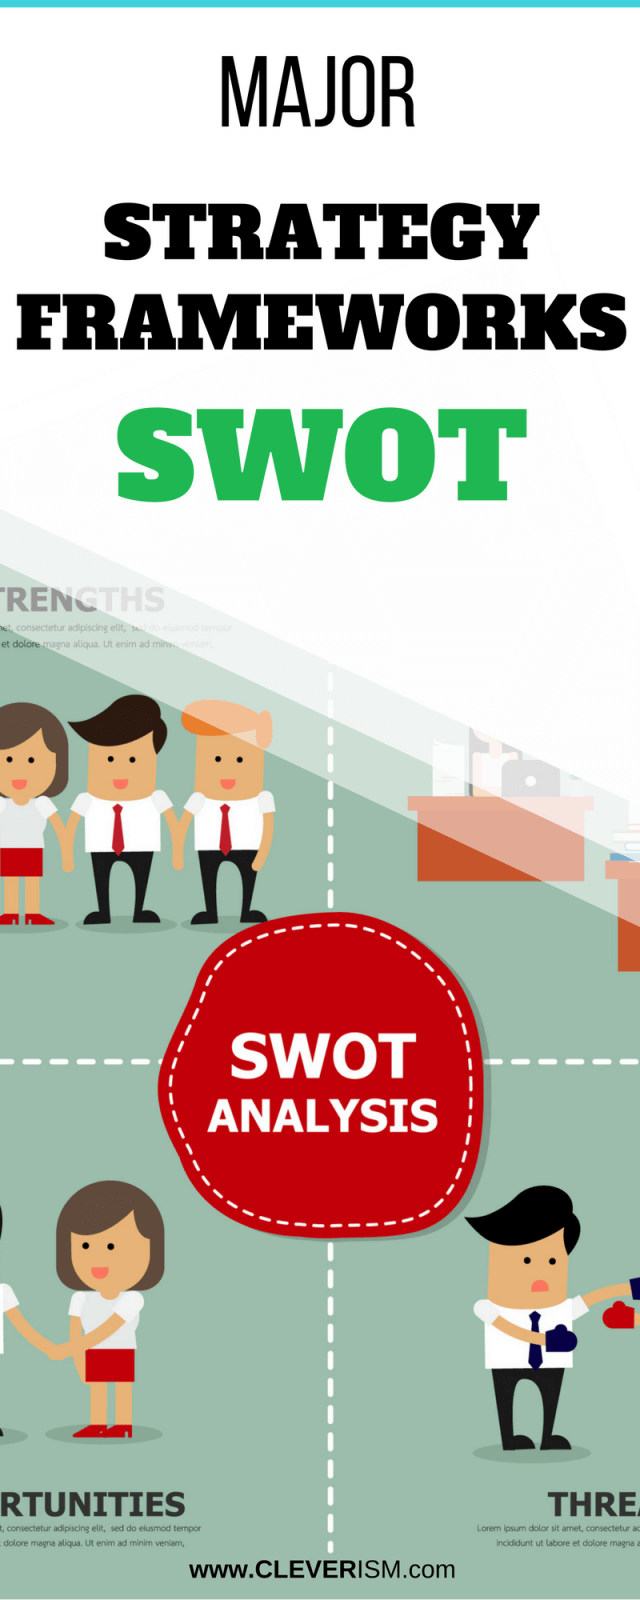 clipart free stock Major strategy frameworks swot. Yes clipart strength weakness